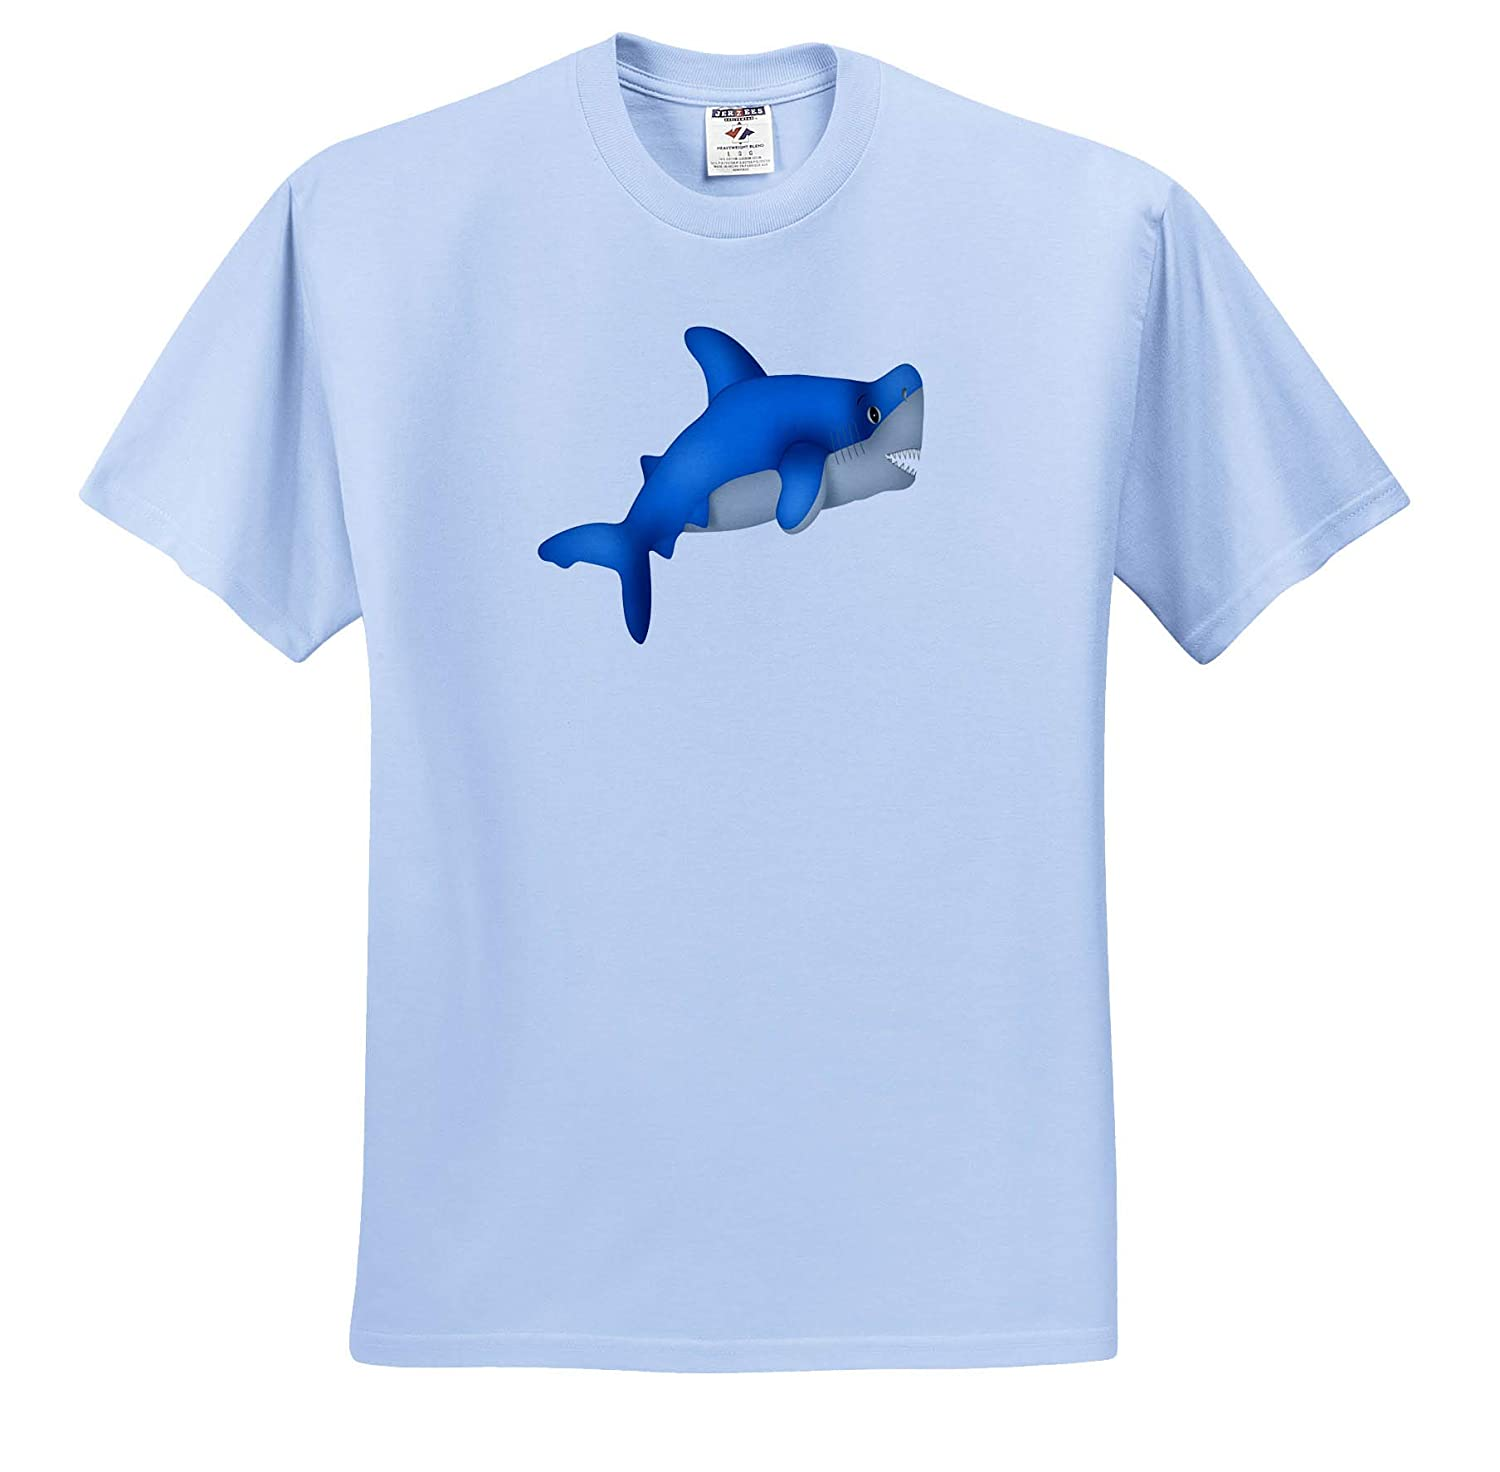 Cute Blue and Gray Shark Illustration Illustrations ts/_318001 3dRose Anne Marie Baugh Adult T-Shirt XL